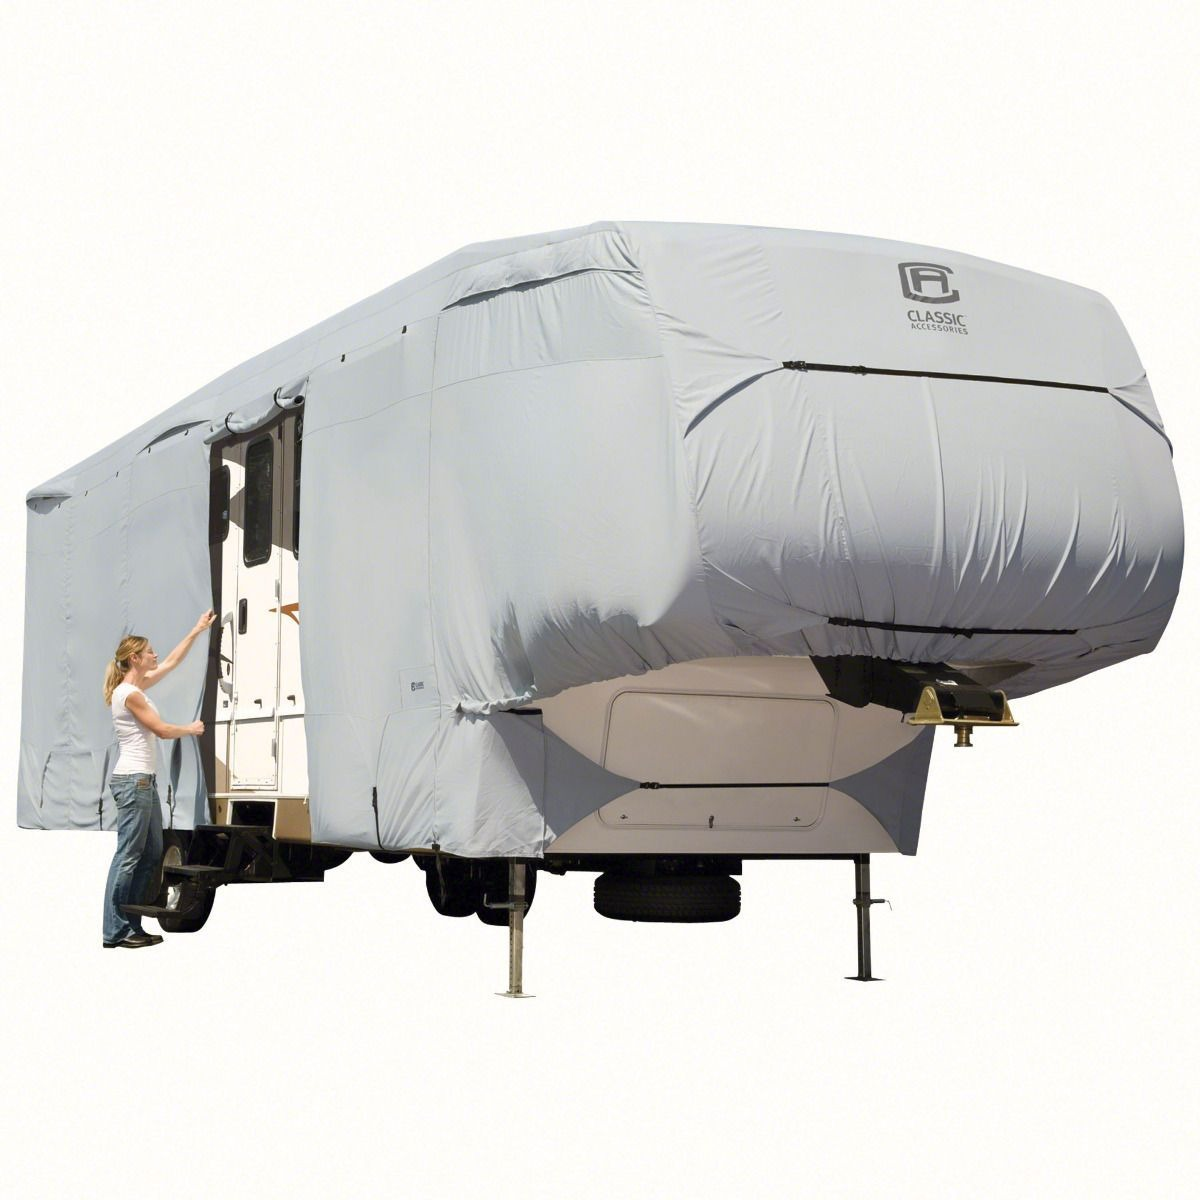 PermaPro Fifth Wheel Covers